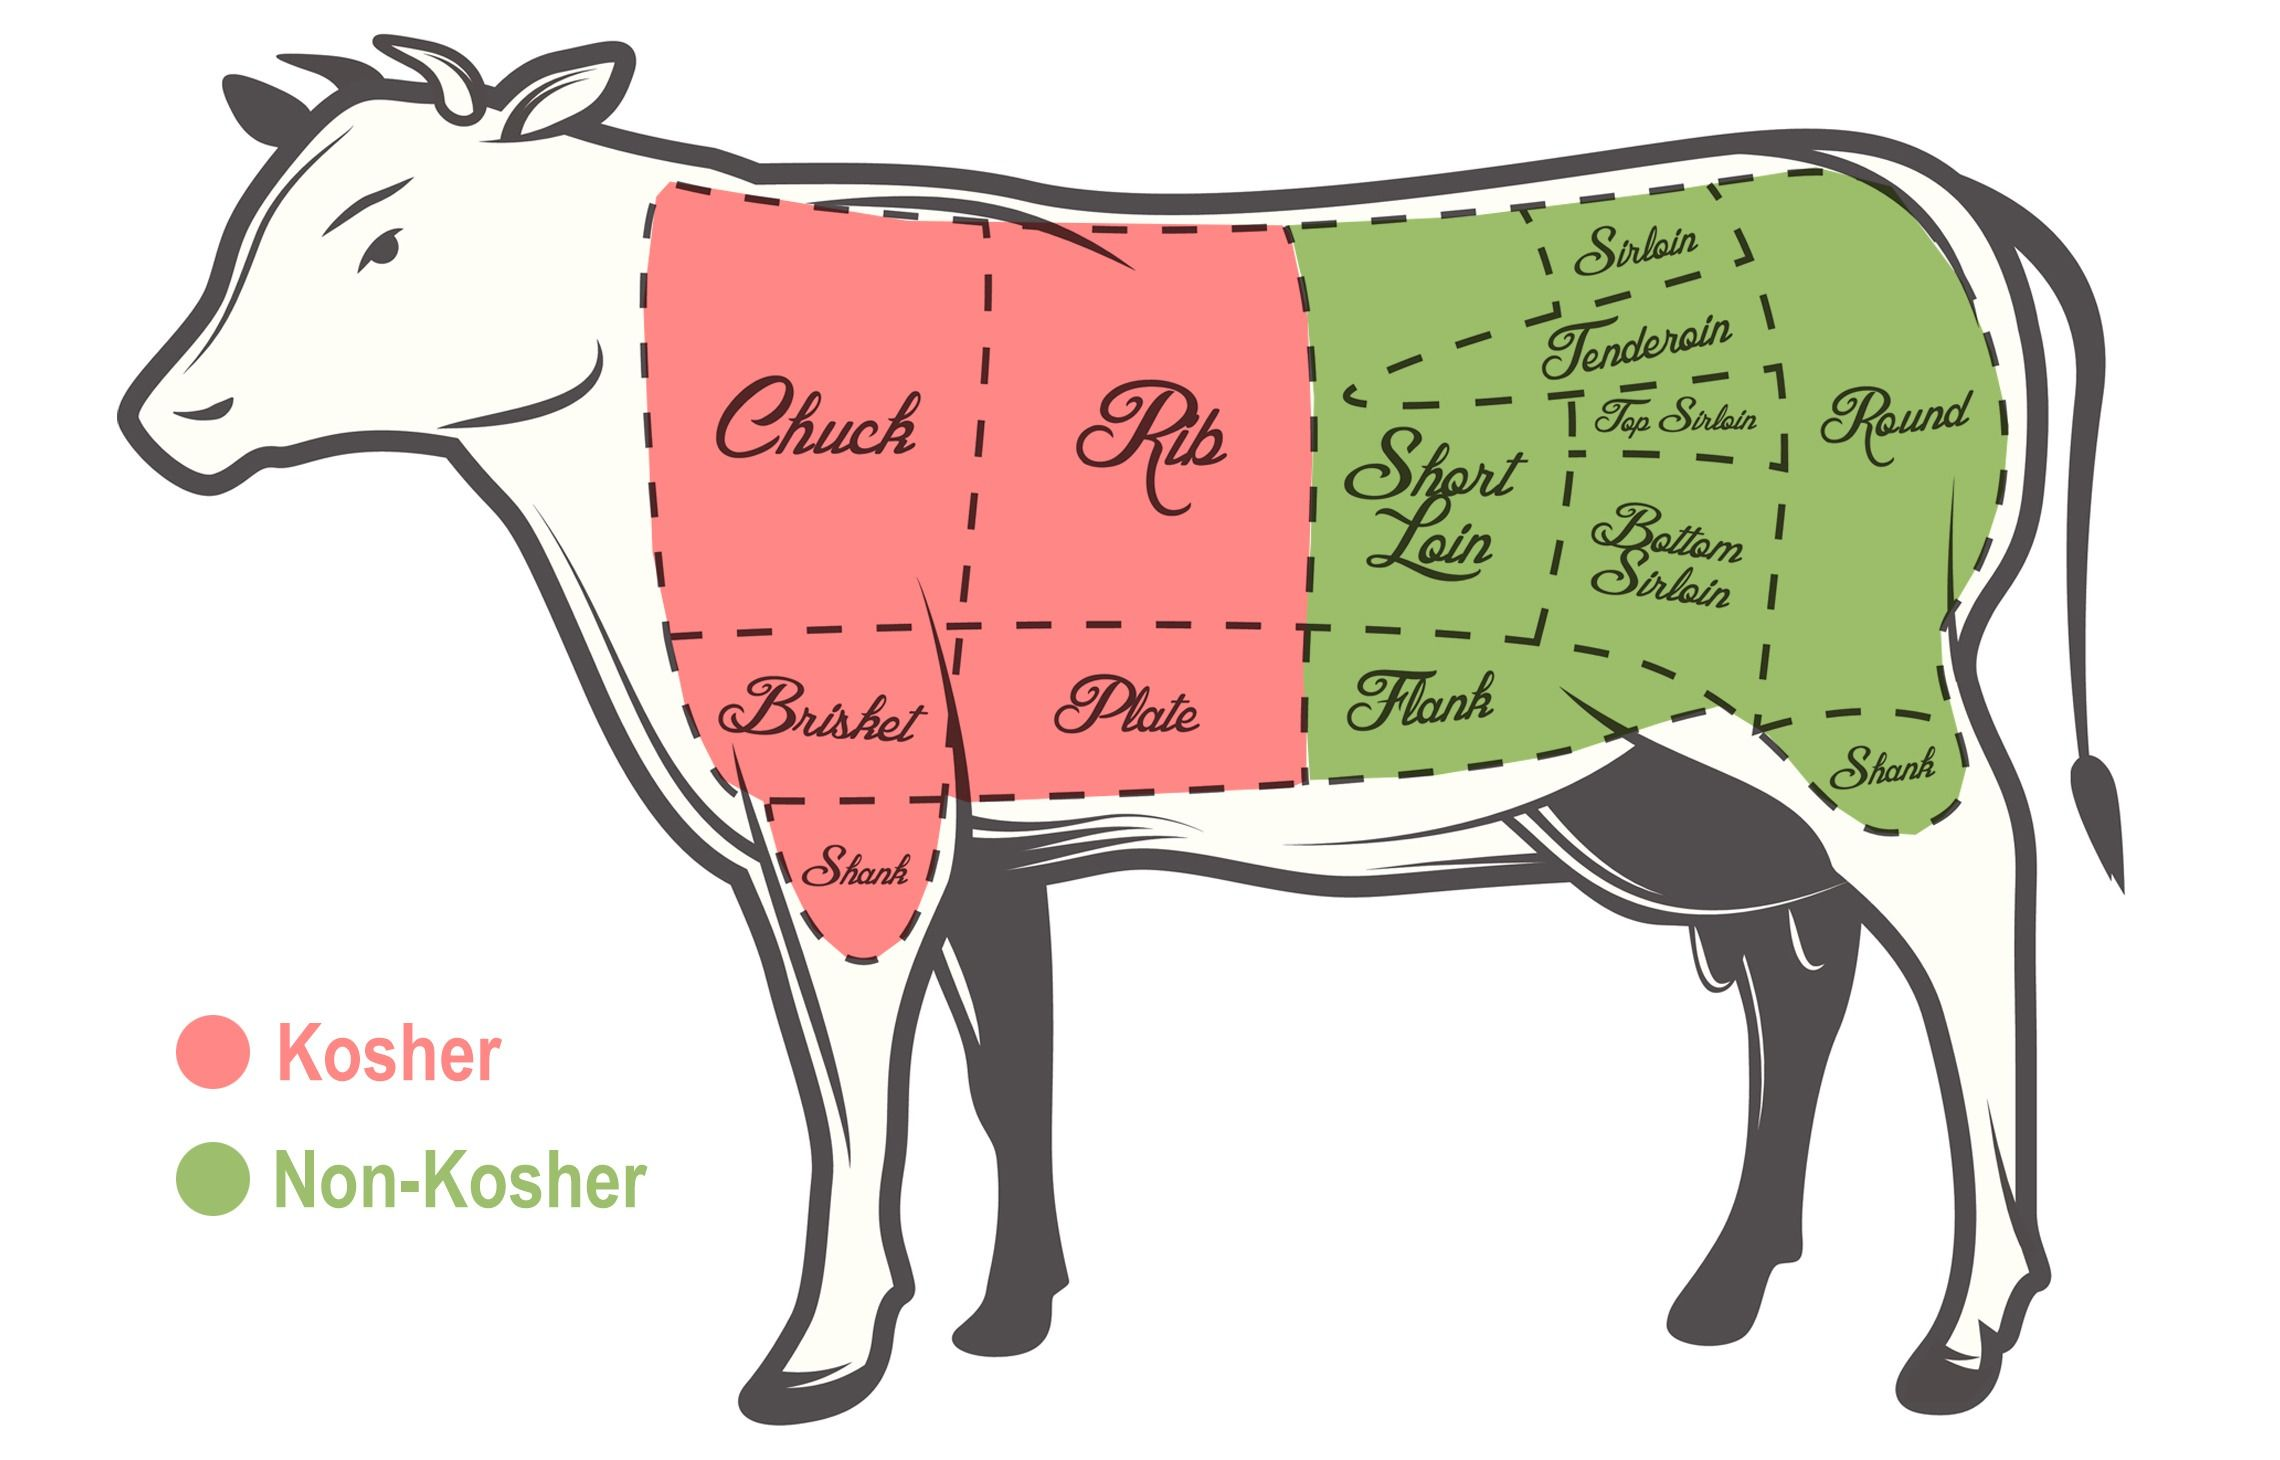 Kosher beef diagram.